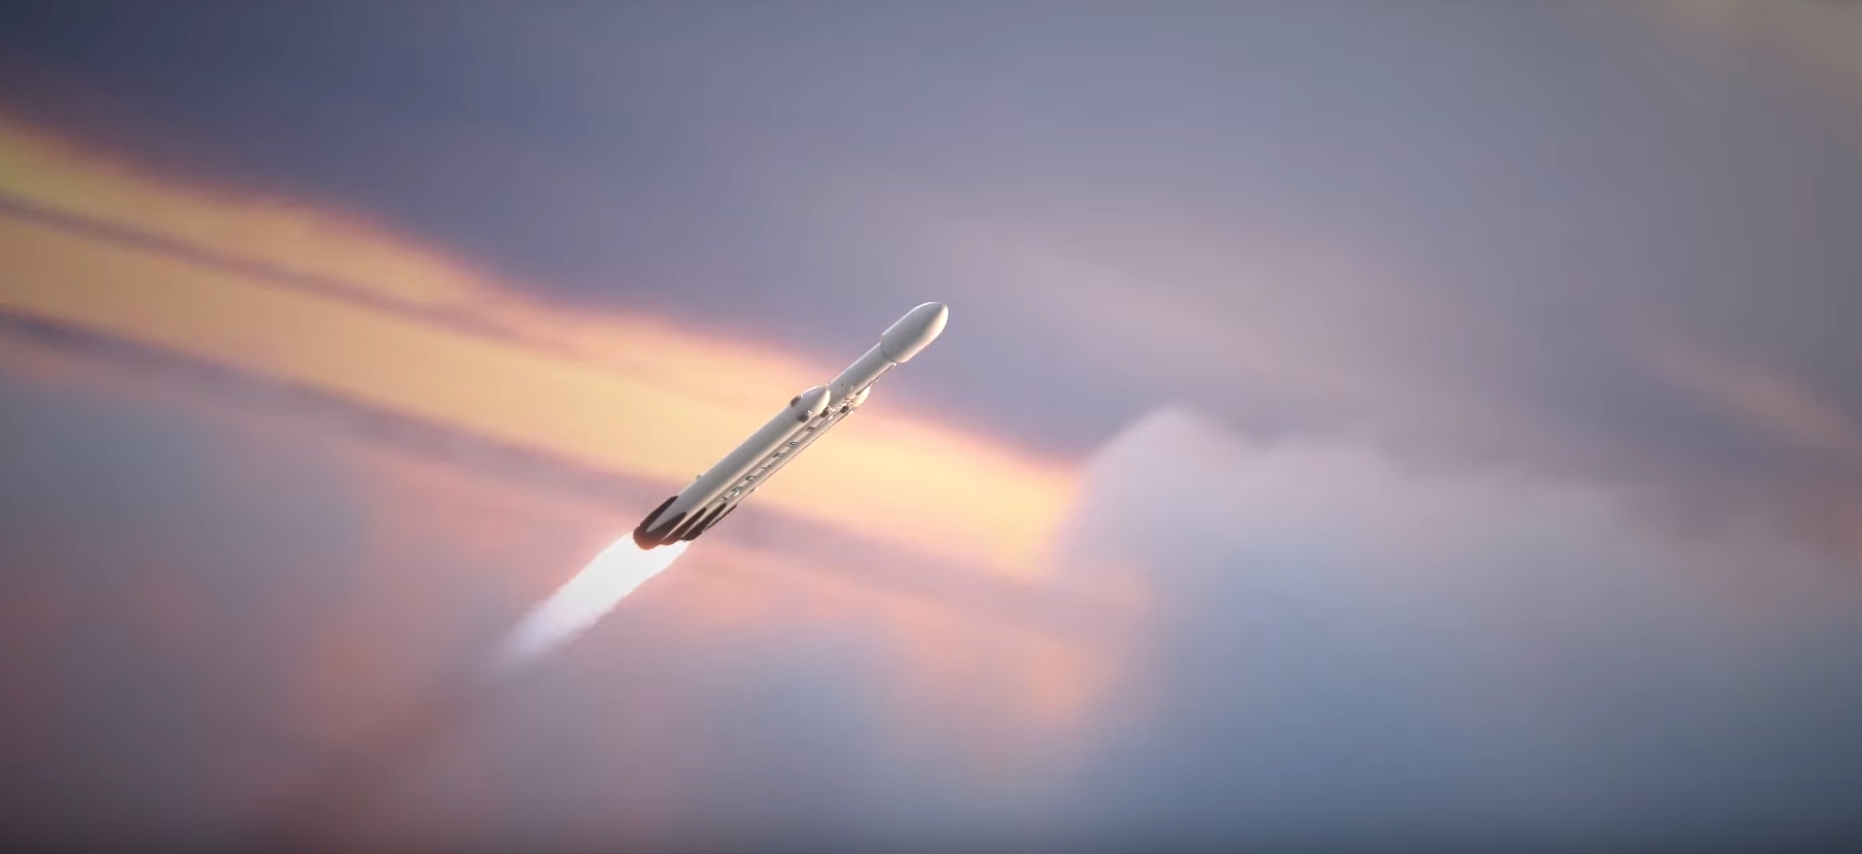 SpaceX aims for late-December launch of Falcon Heavy ...